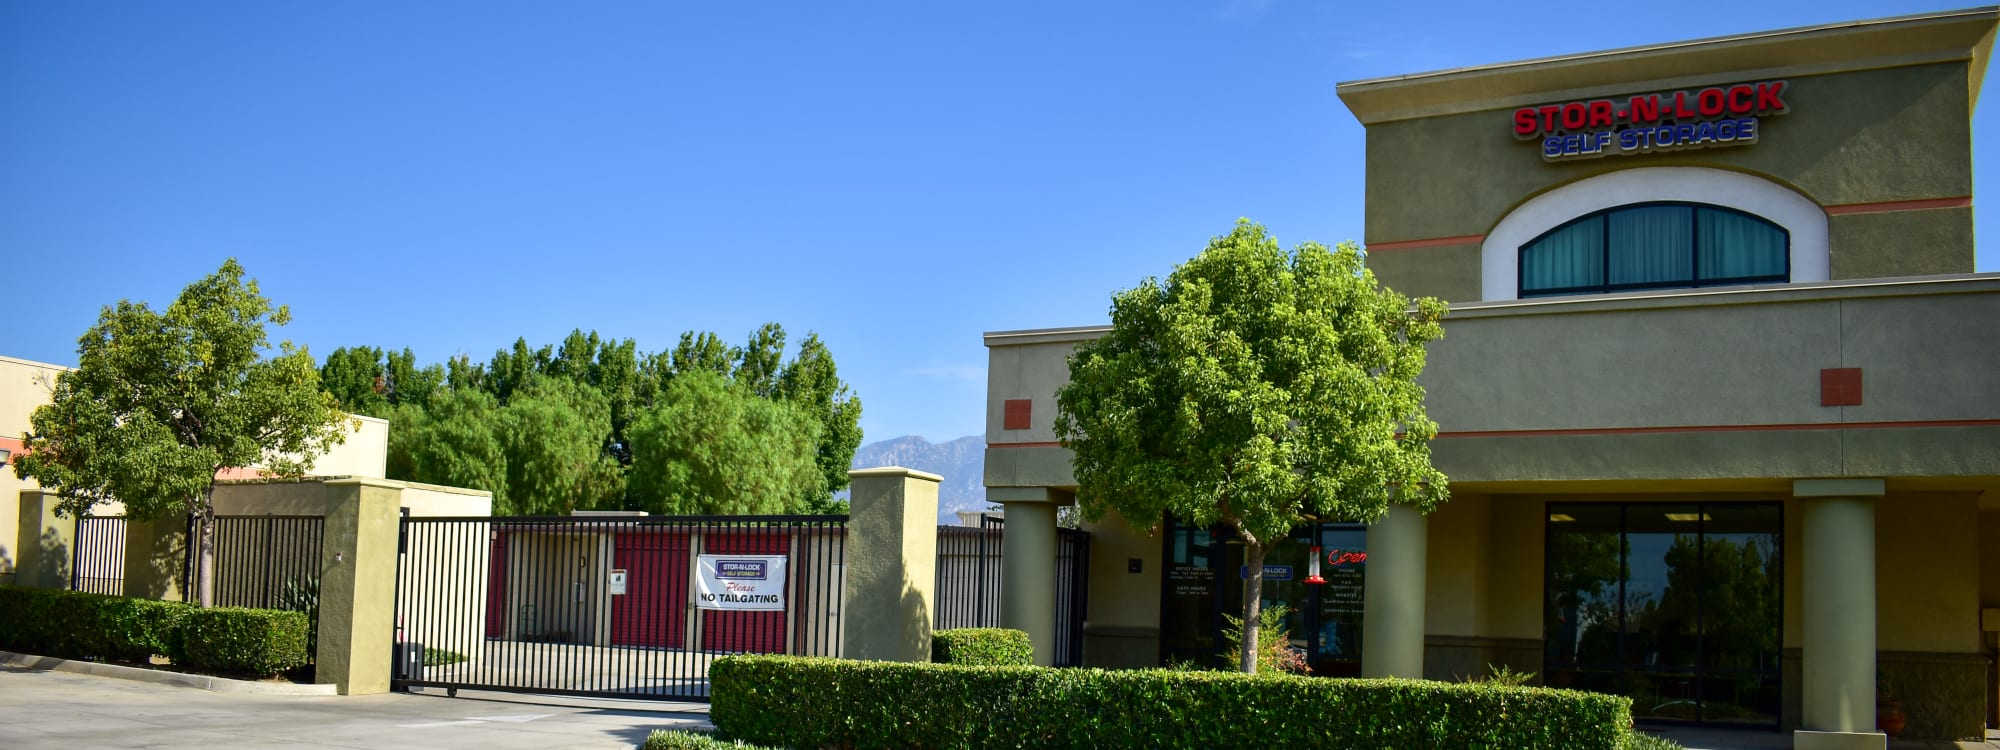 STOR-N-LOCK Self Storage in Rancho Cucamonga, California